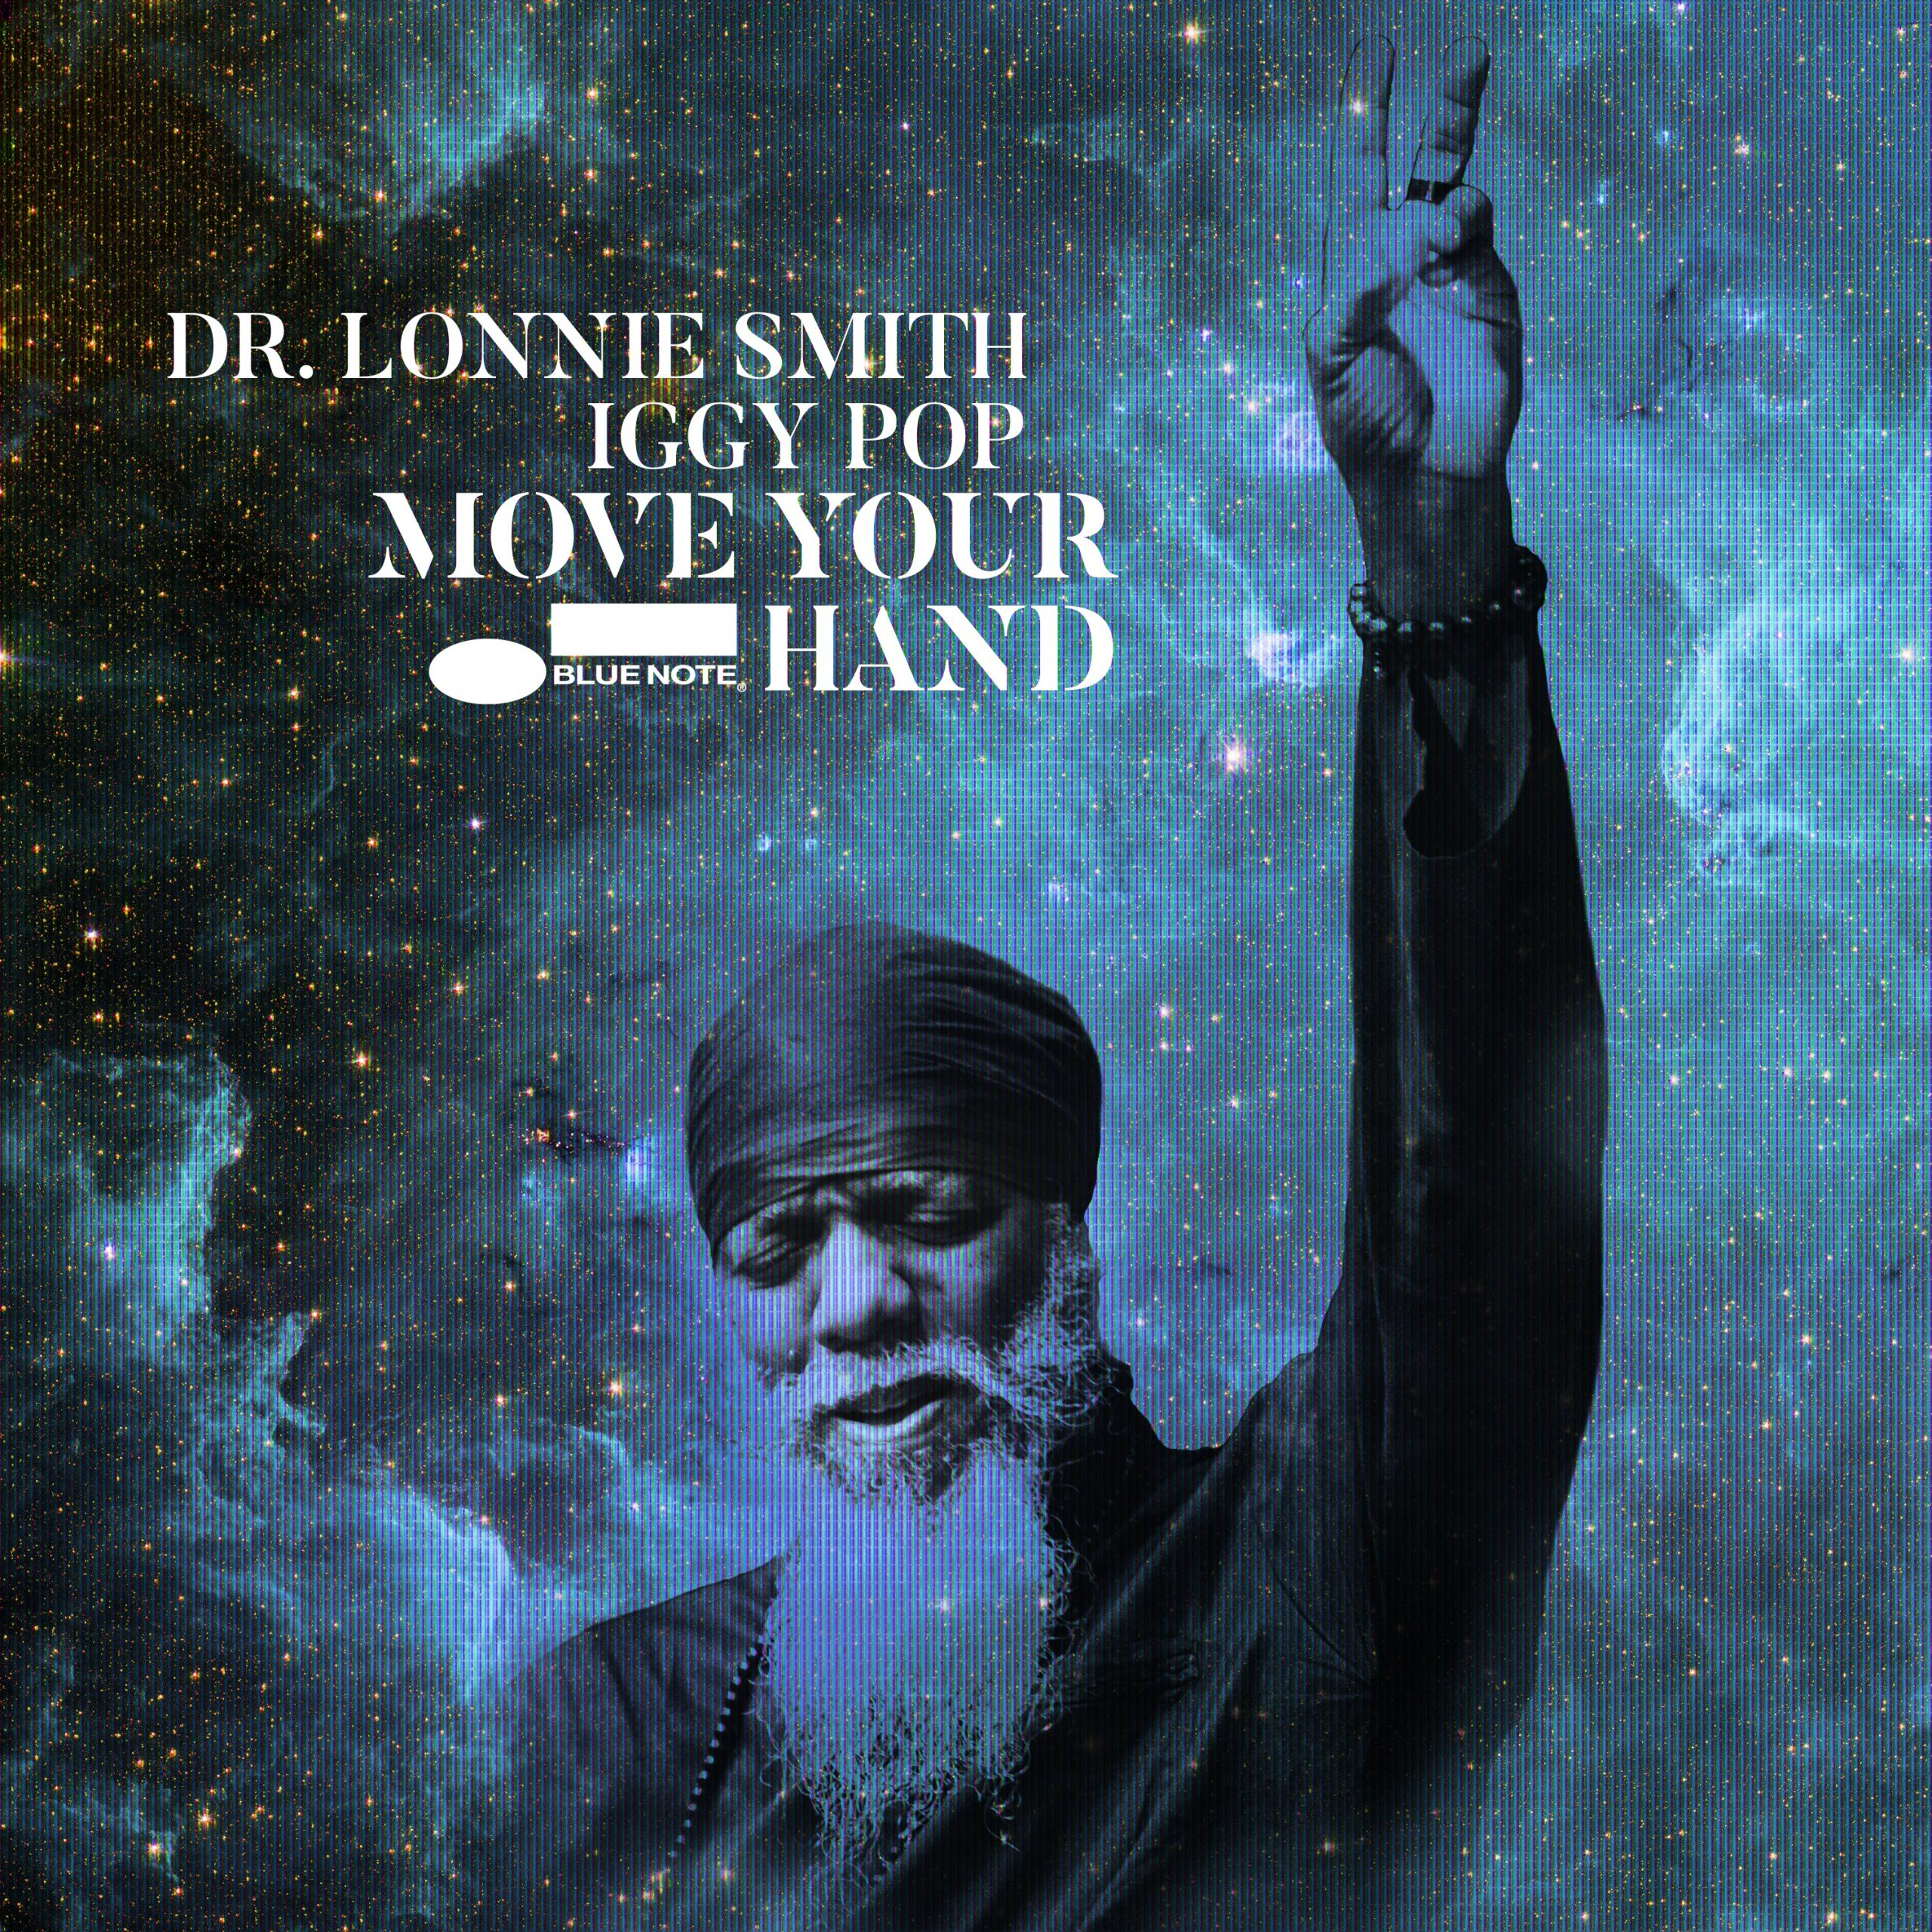 """Dr. Lonnie Smith & Iggy Pop – """"Move Your Hand"""""""